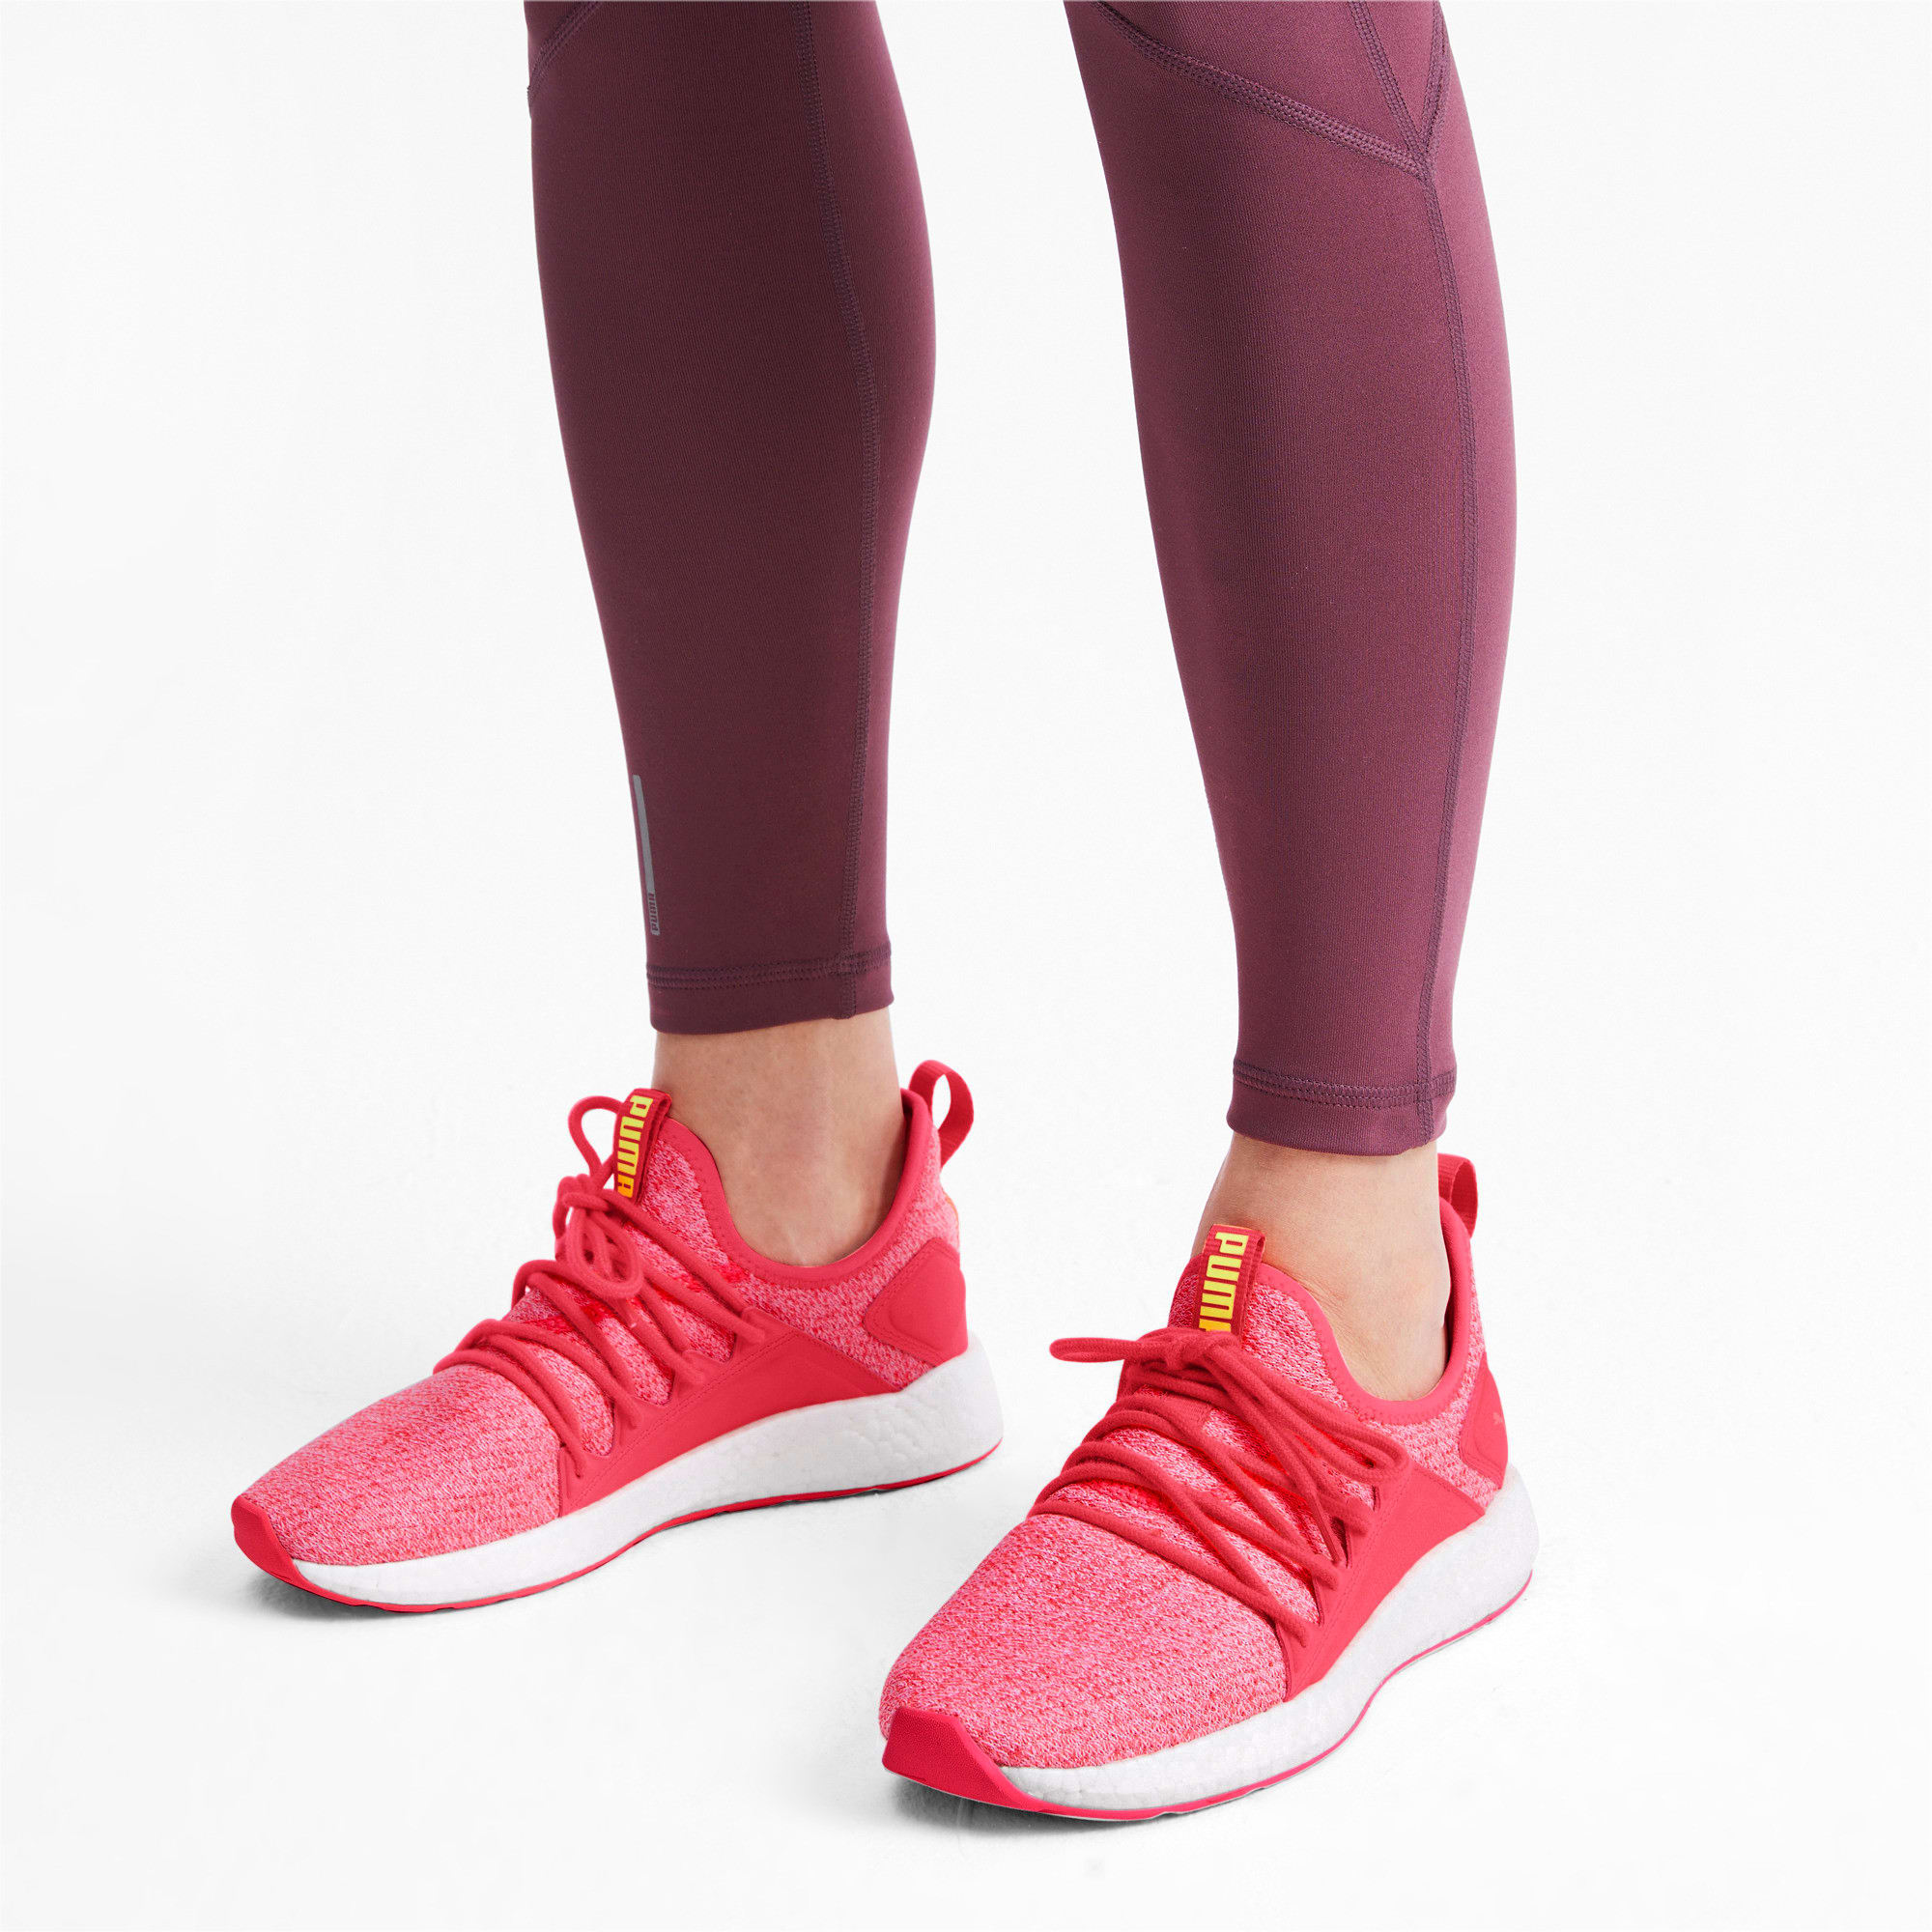 Thumbnail 2 of NRGY Neko Knit Women's Running Shoes, Pink Alert-Puma White, medium-IND